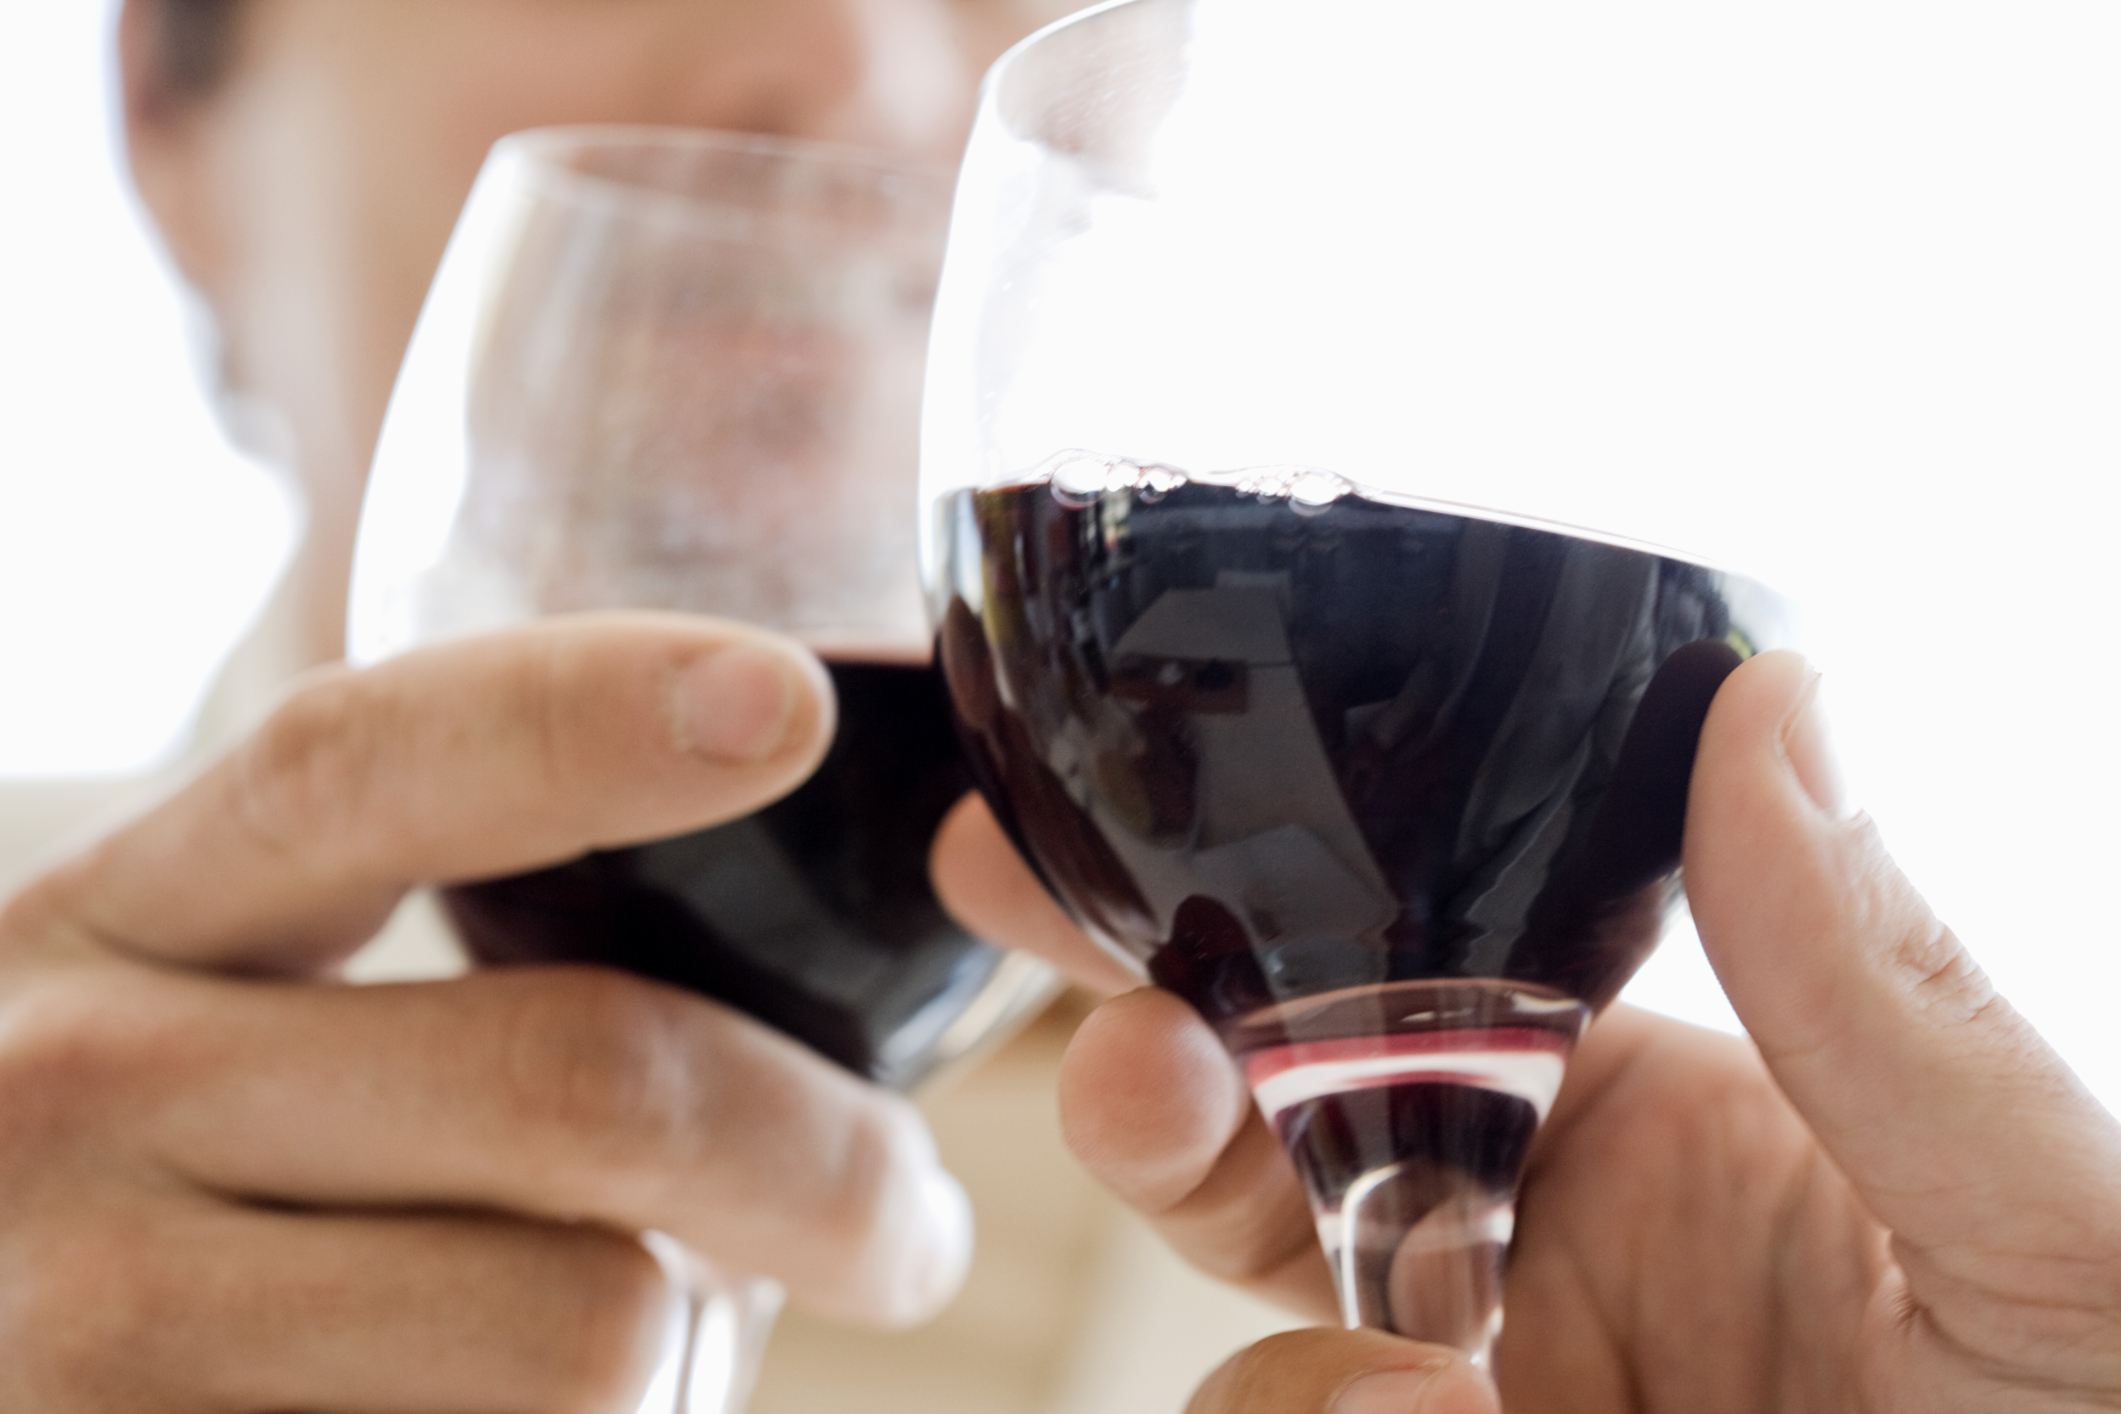 Alcoholics may be at risk for a vitamin B-12 deficiency.